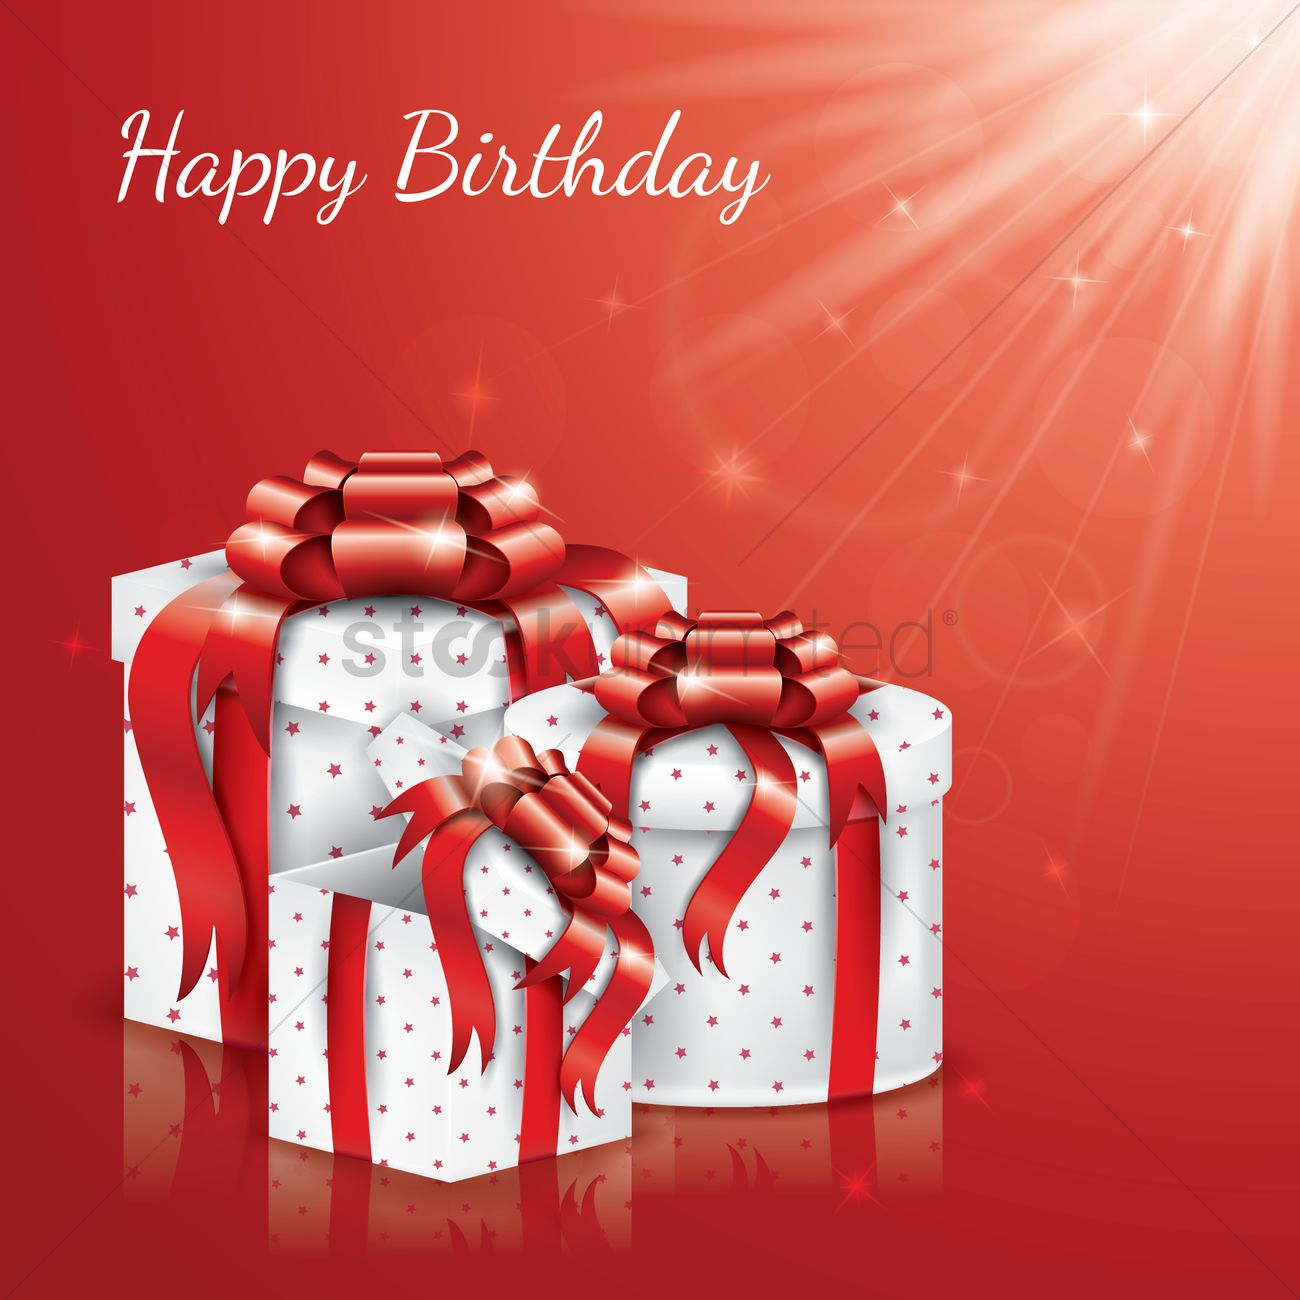 Happy Birthday With Gift Boxes Vector Image 1934612 Stockunlimited